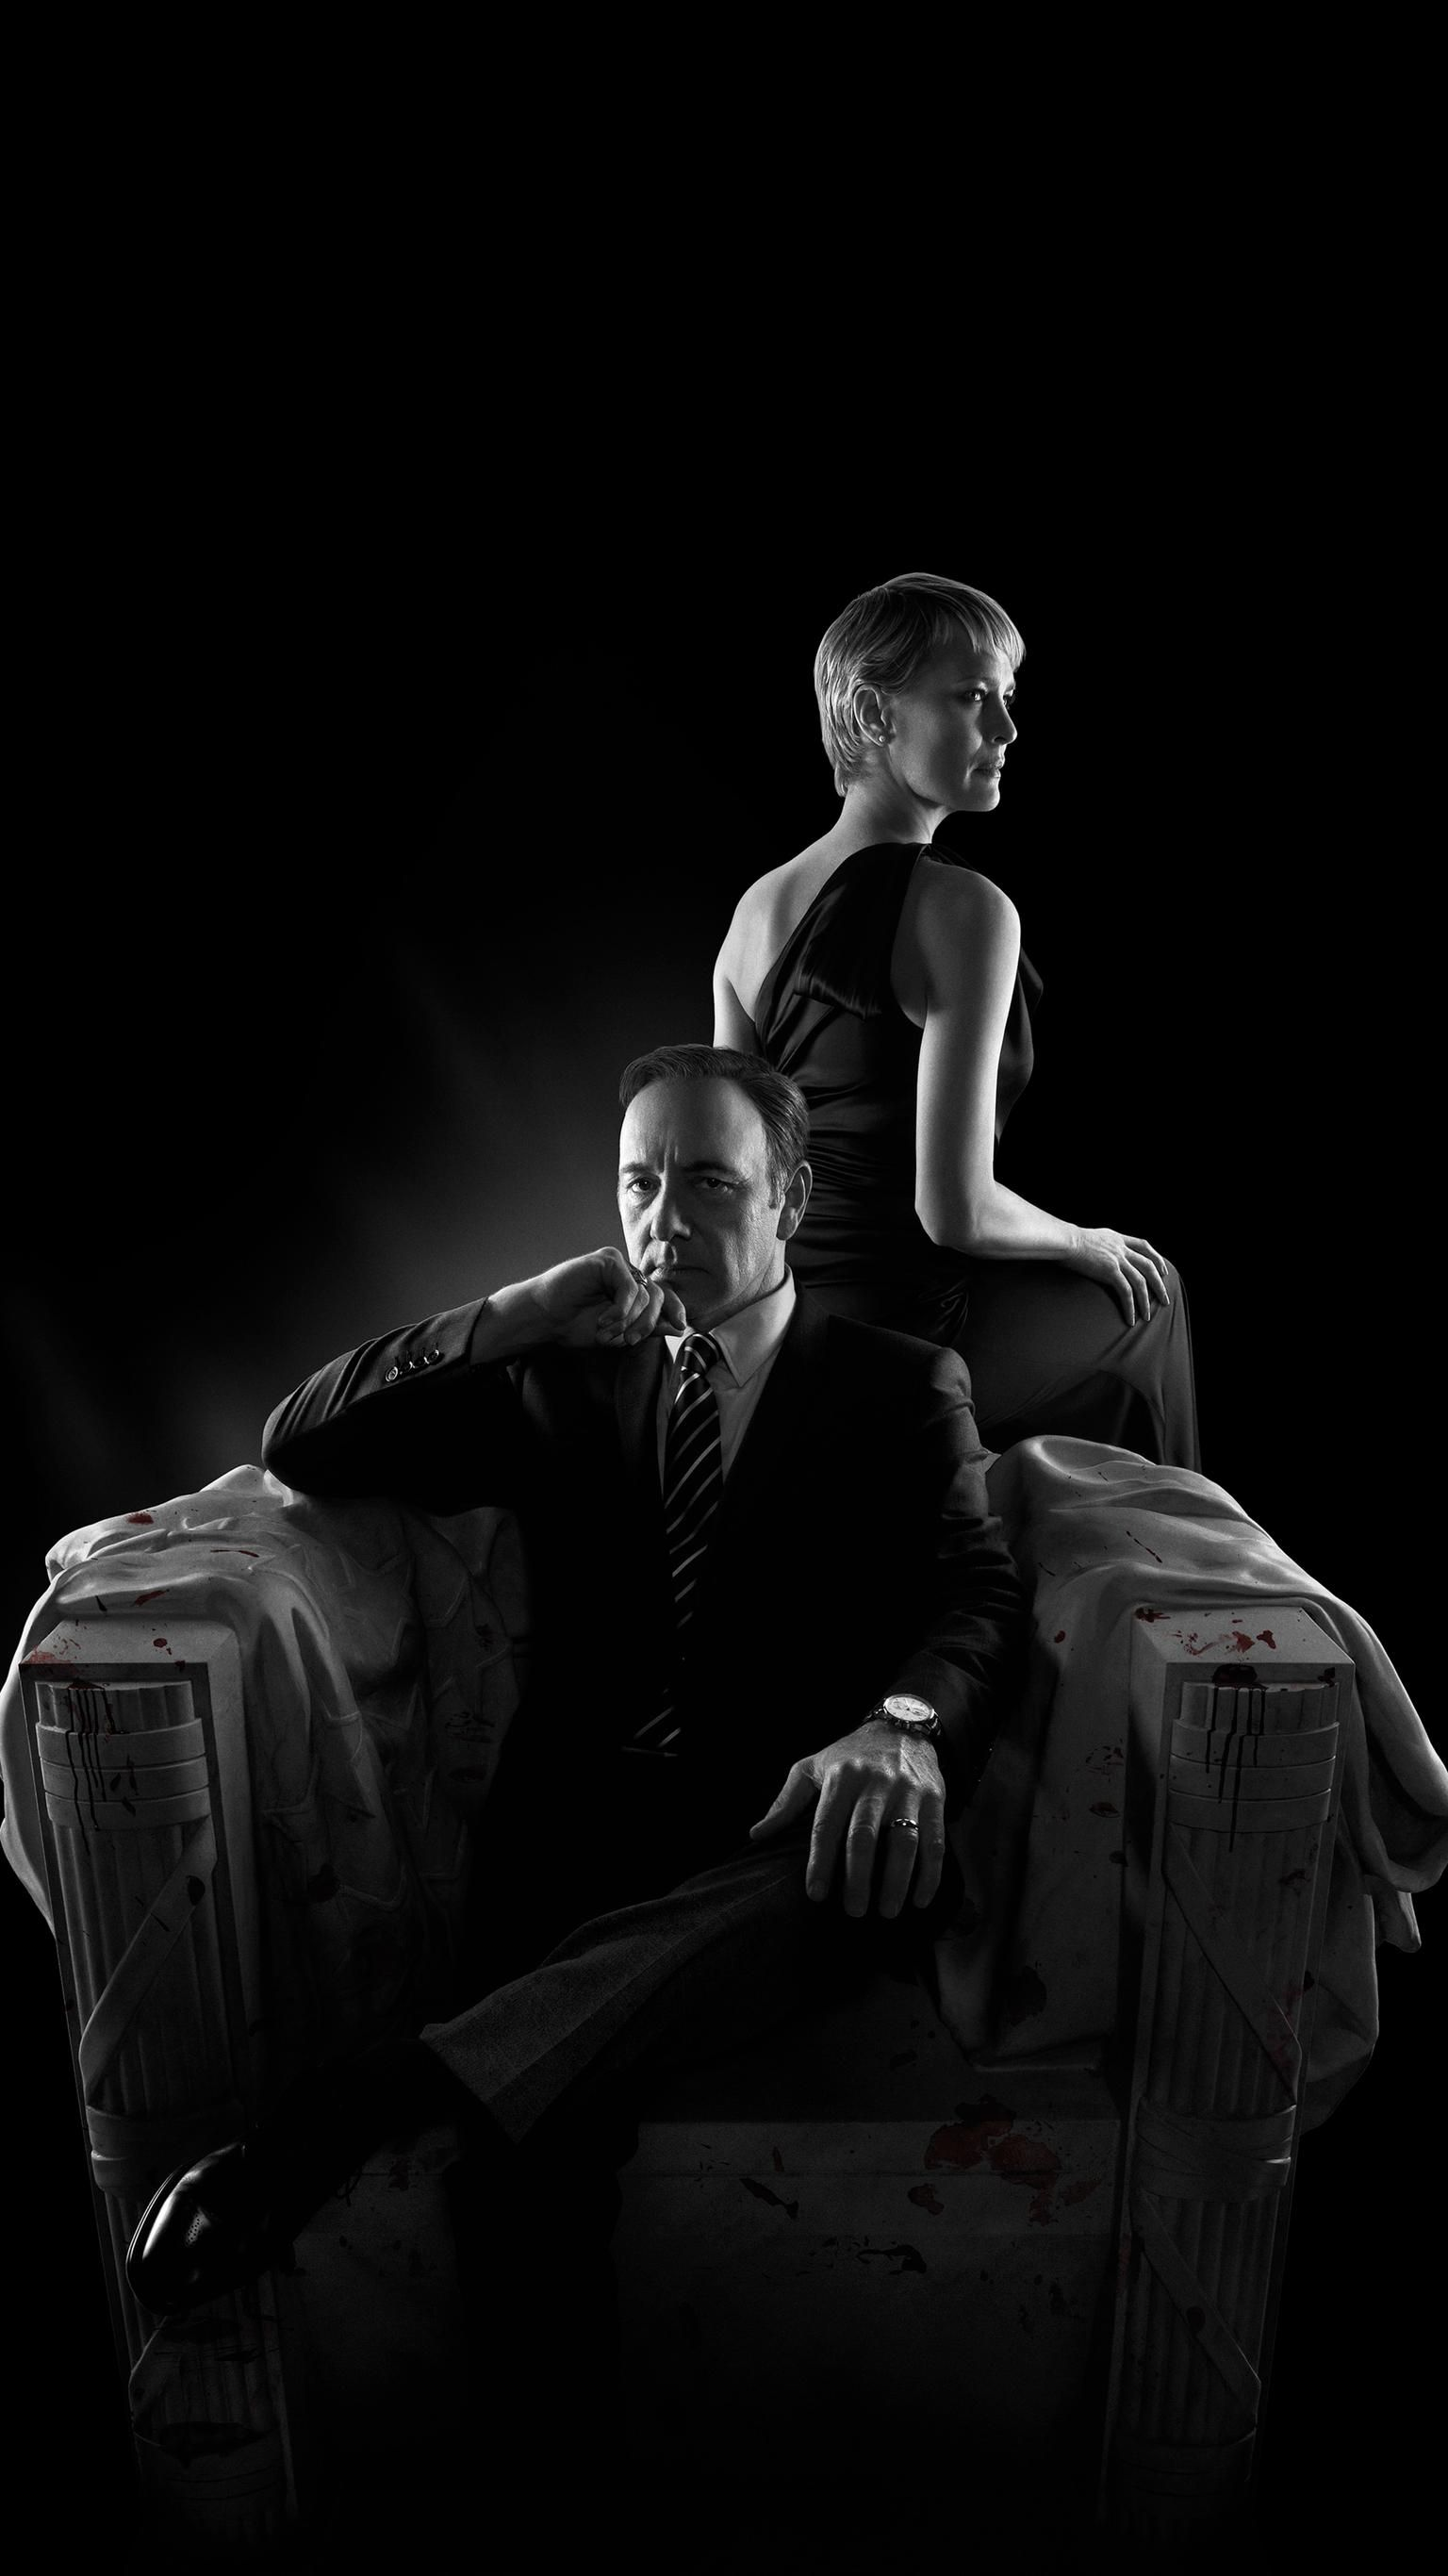 Moviemania Textless High Resolution Movie Wallpapers House Of Cards House Of Cards Poster Movie Wallpapers